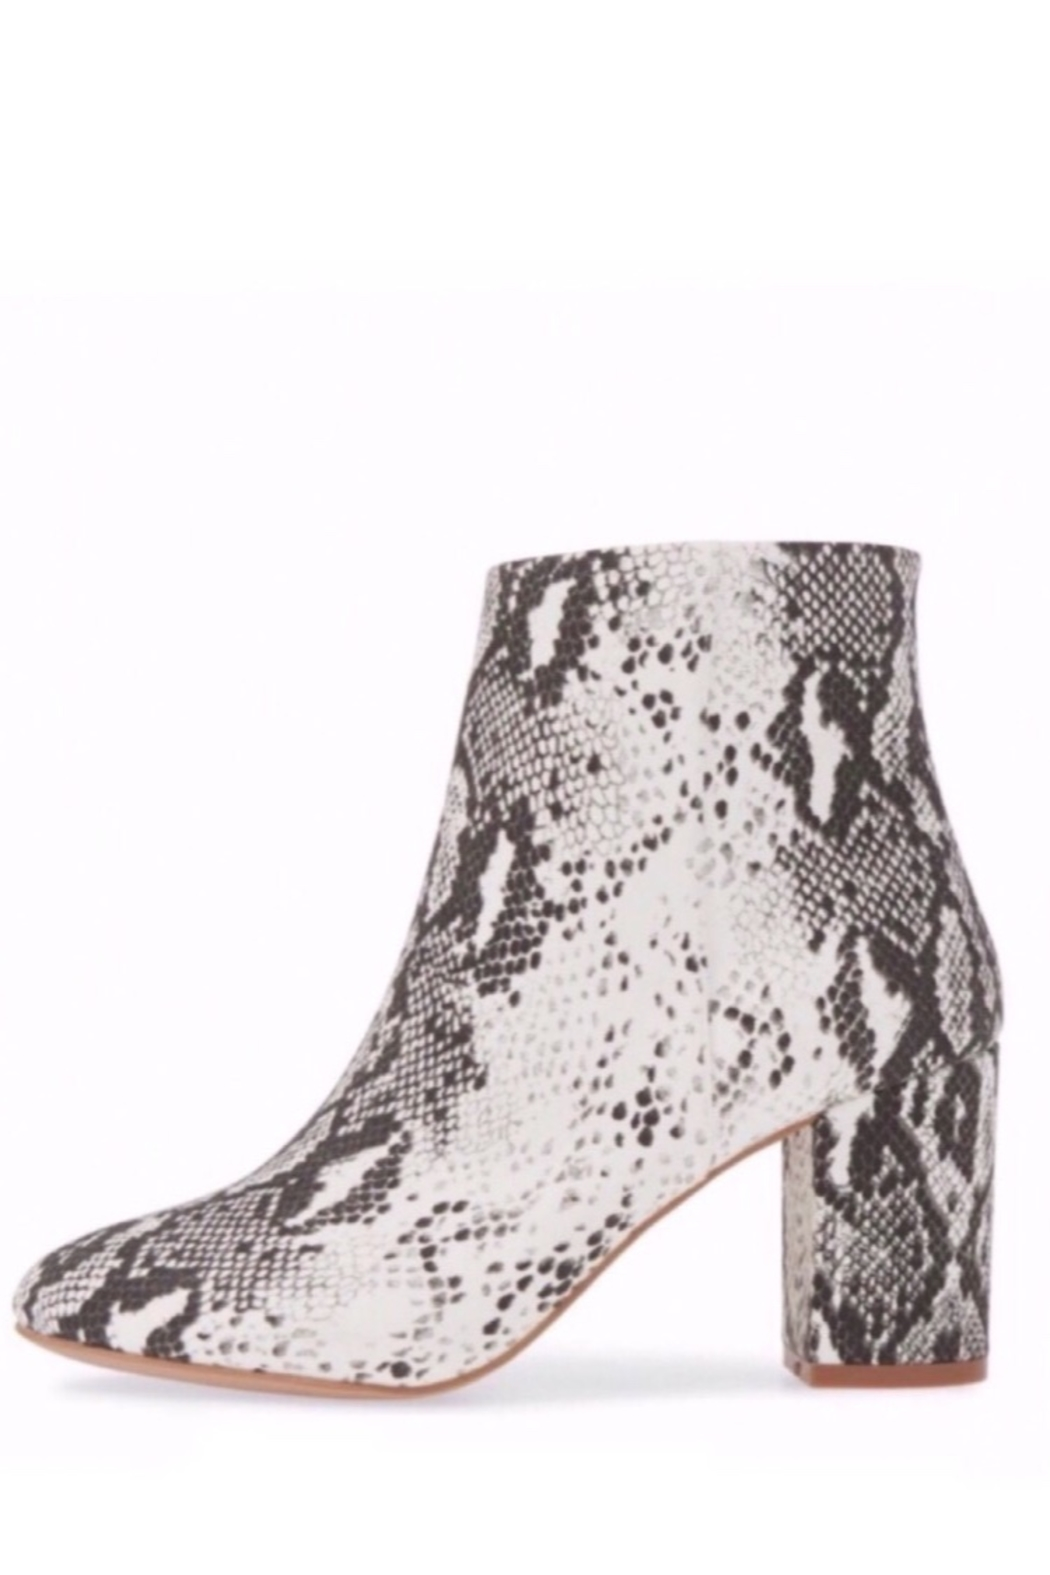 Band Of Gypsies Micro Suede Snake Print Vegan Booties - Side Cropped Image